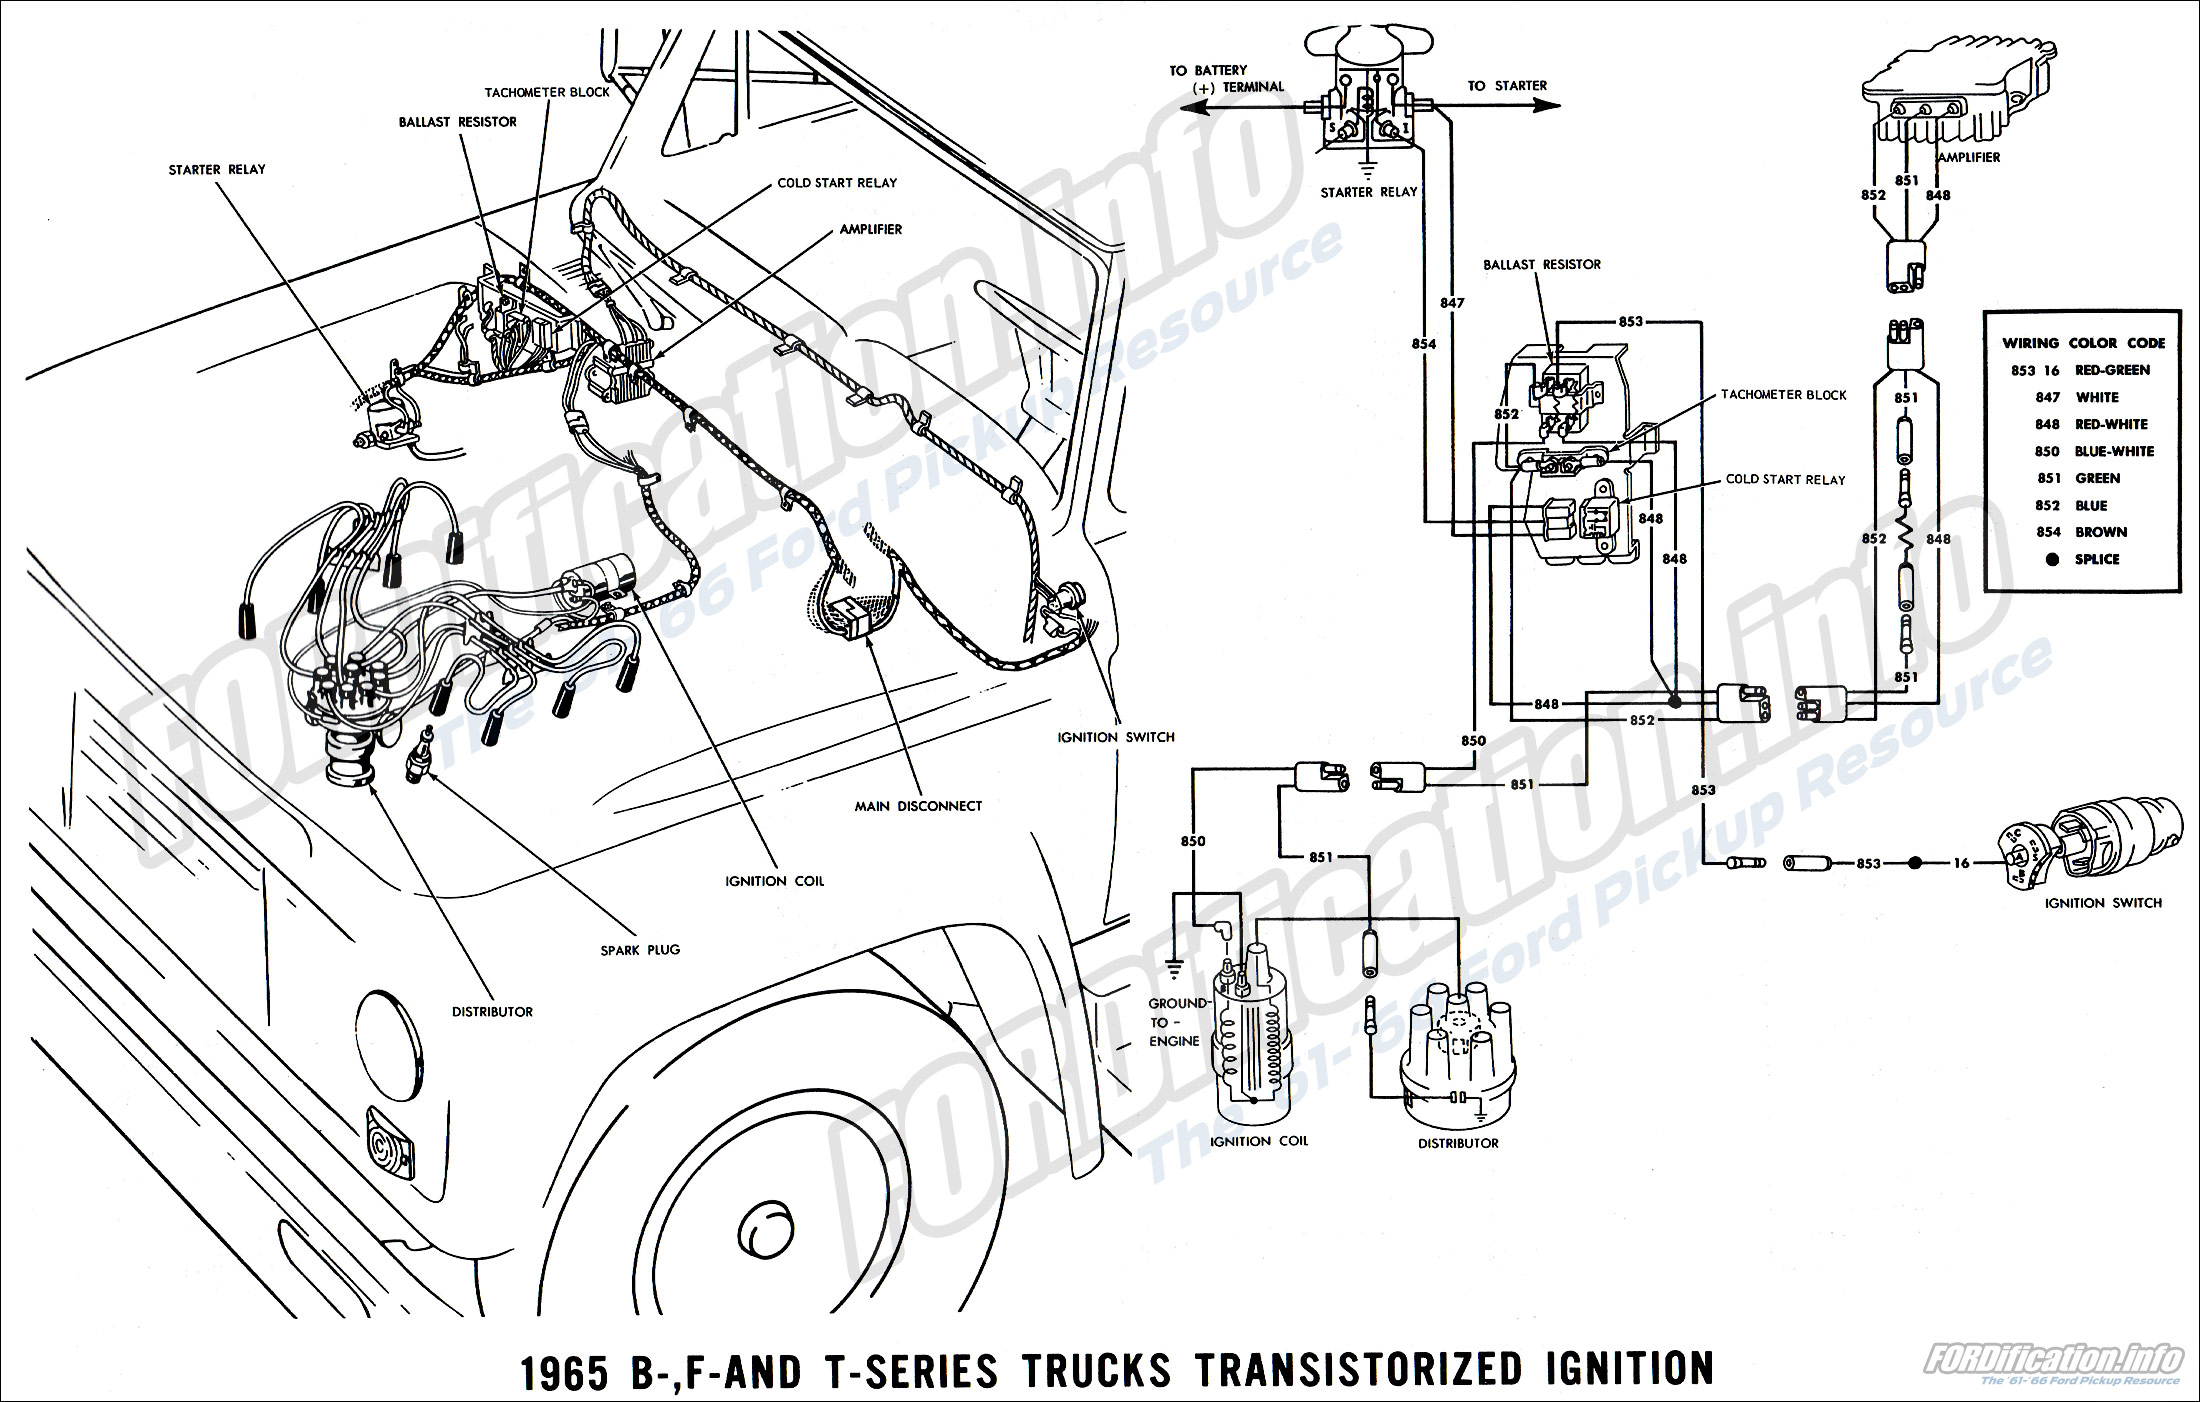 1972 Ford F100 Truck Wiring Diagrams Trusted Diagram 1967 F 100 Harness 1065 Reveolution Of U2022 F250